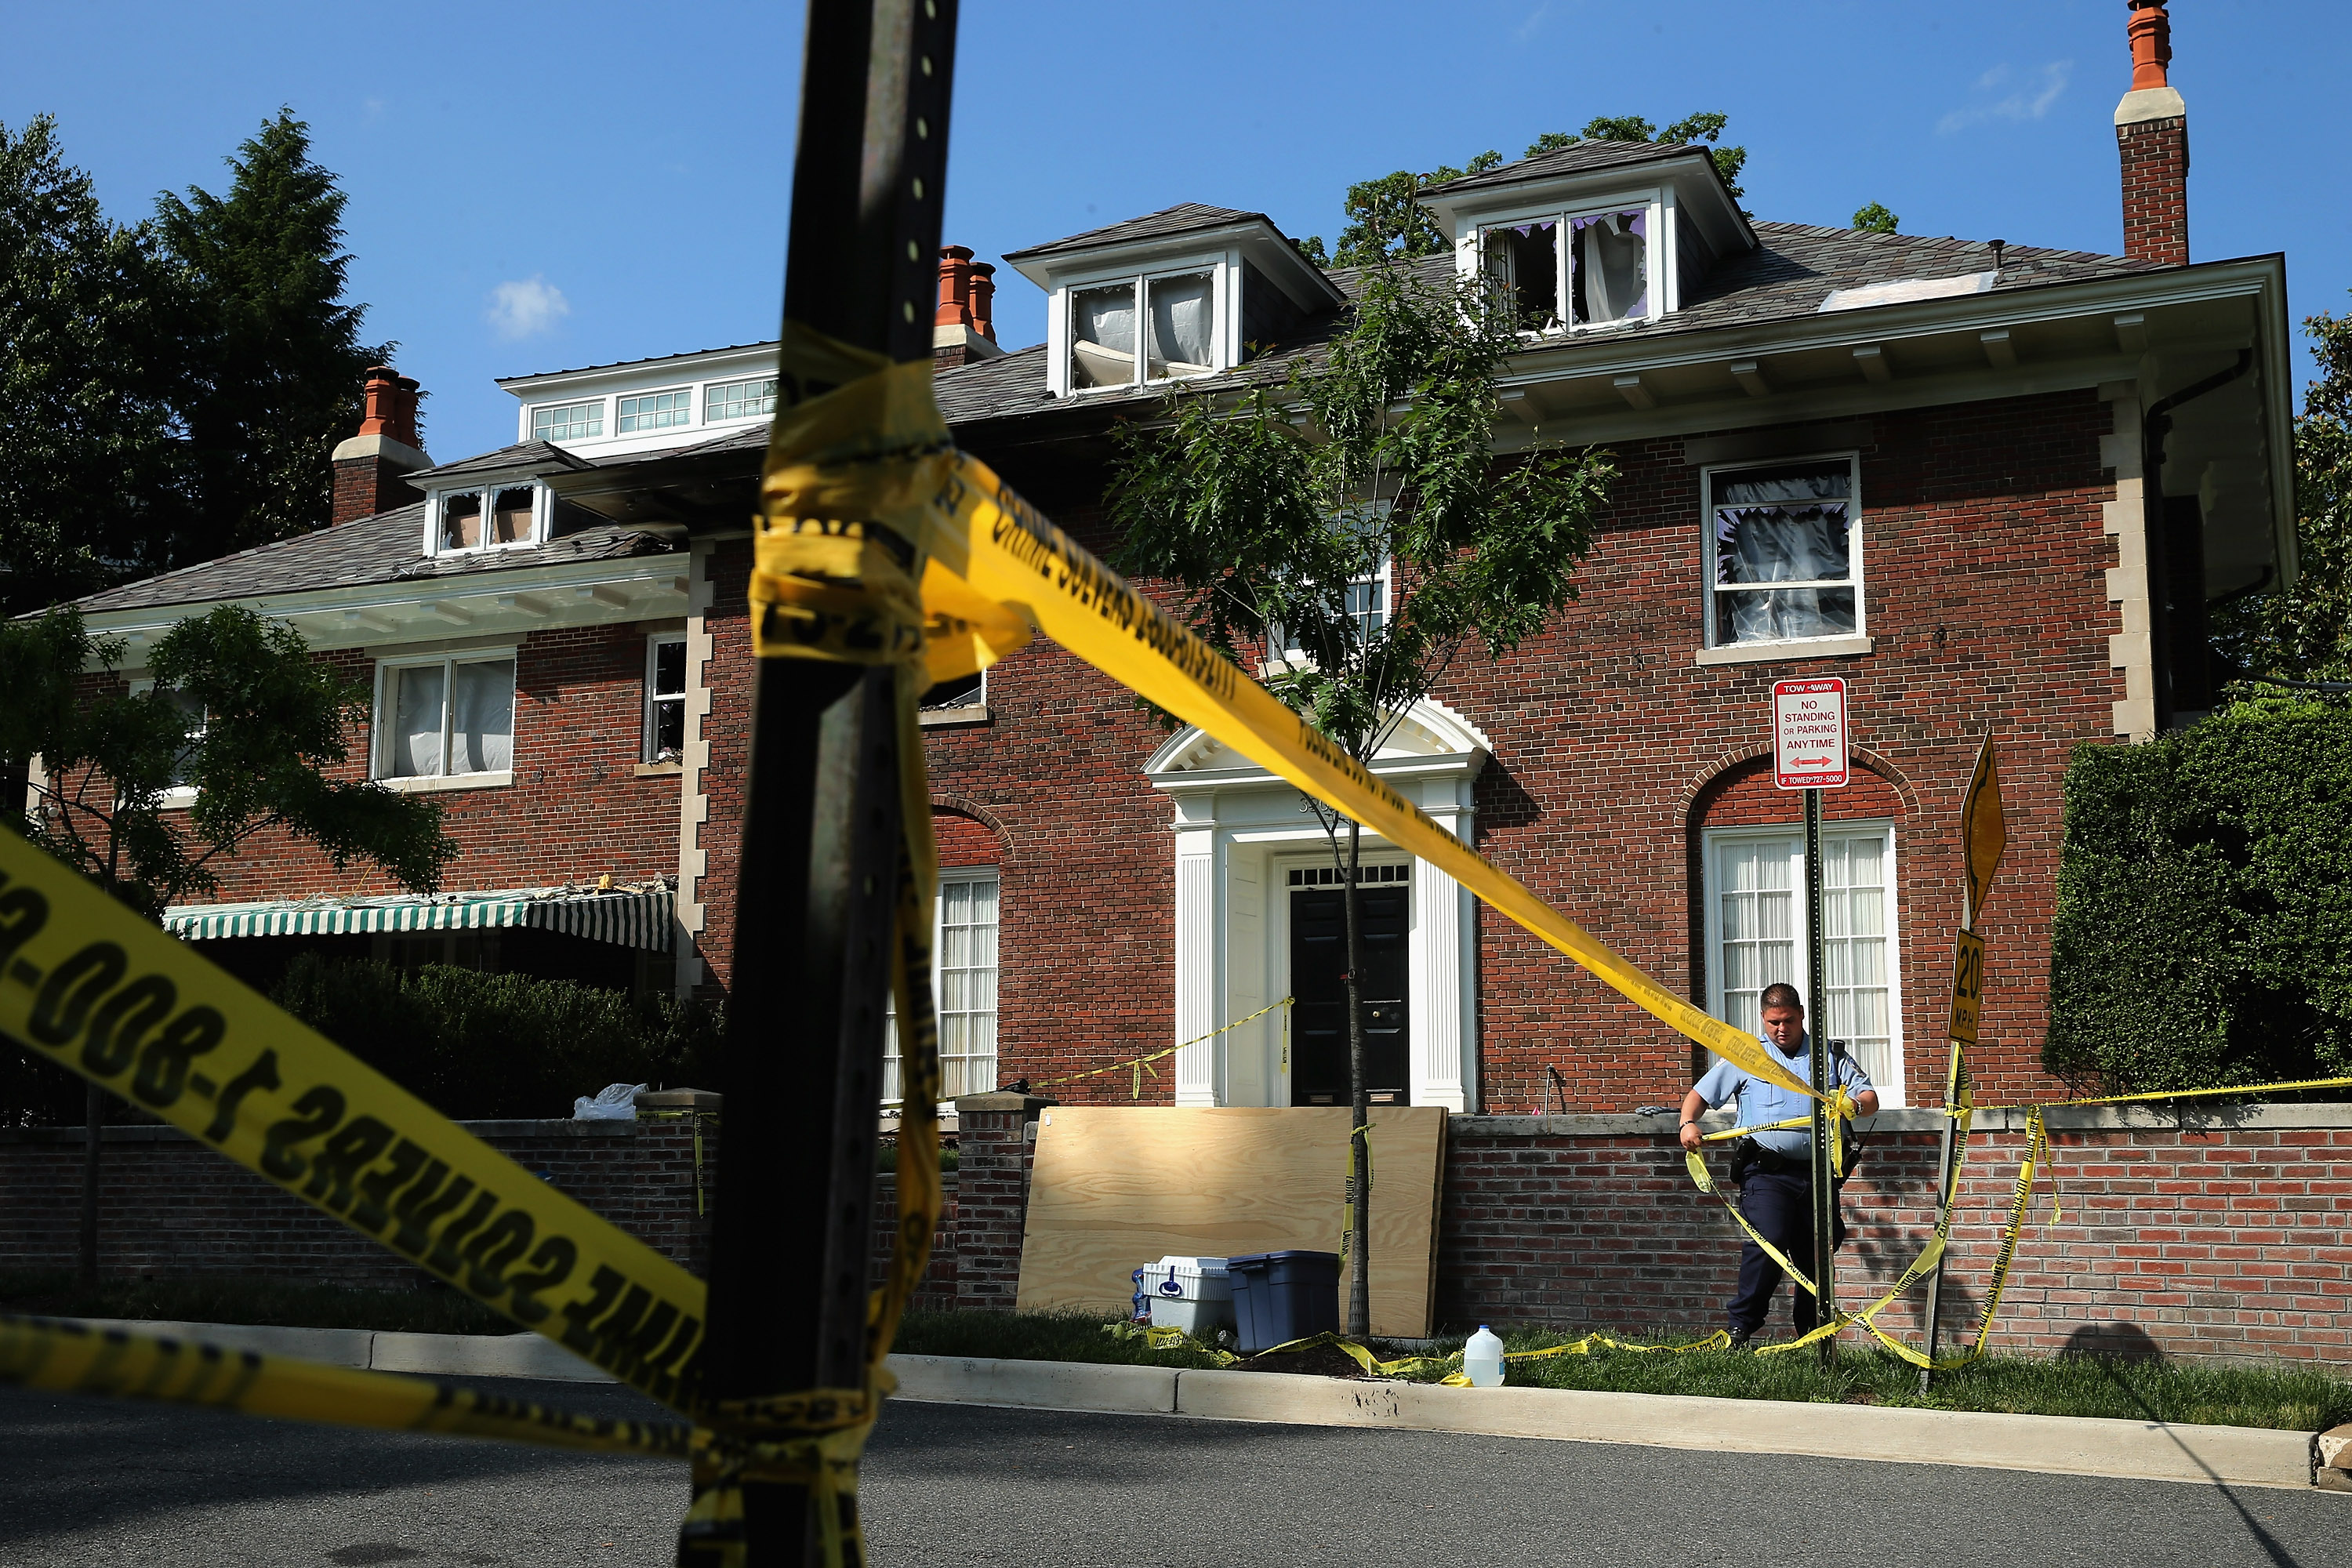 The house where Savvas, Amy and Philip Savopoulos and Vera Figueroa were killed. (Getty)